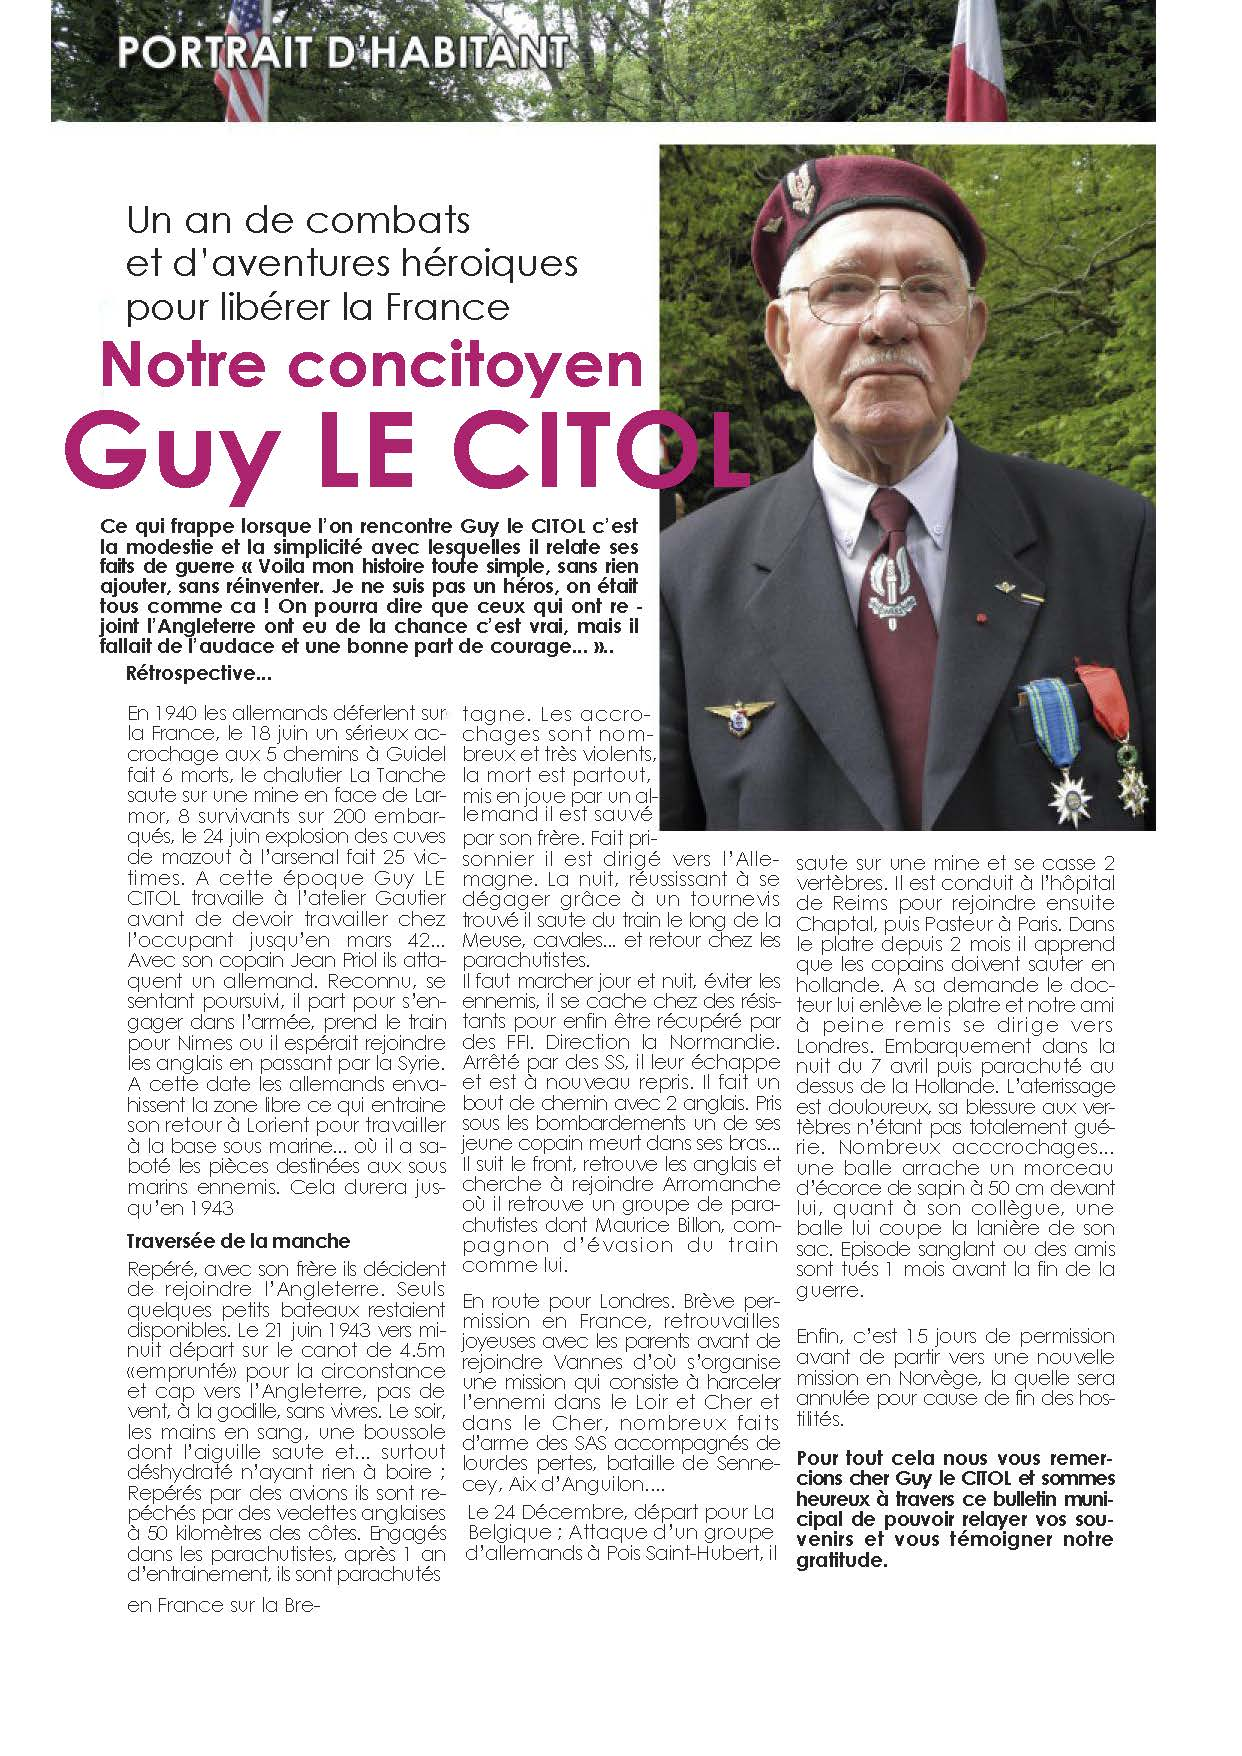 GUY LE CITROL